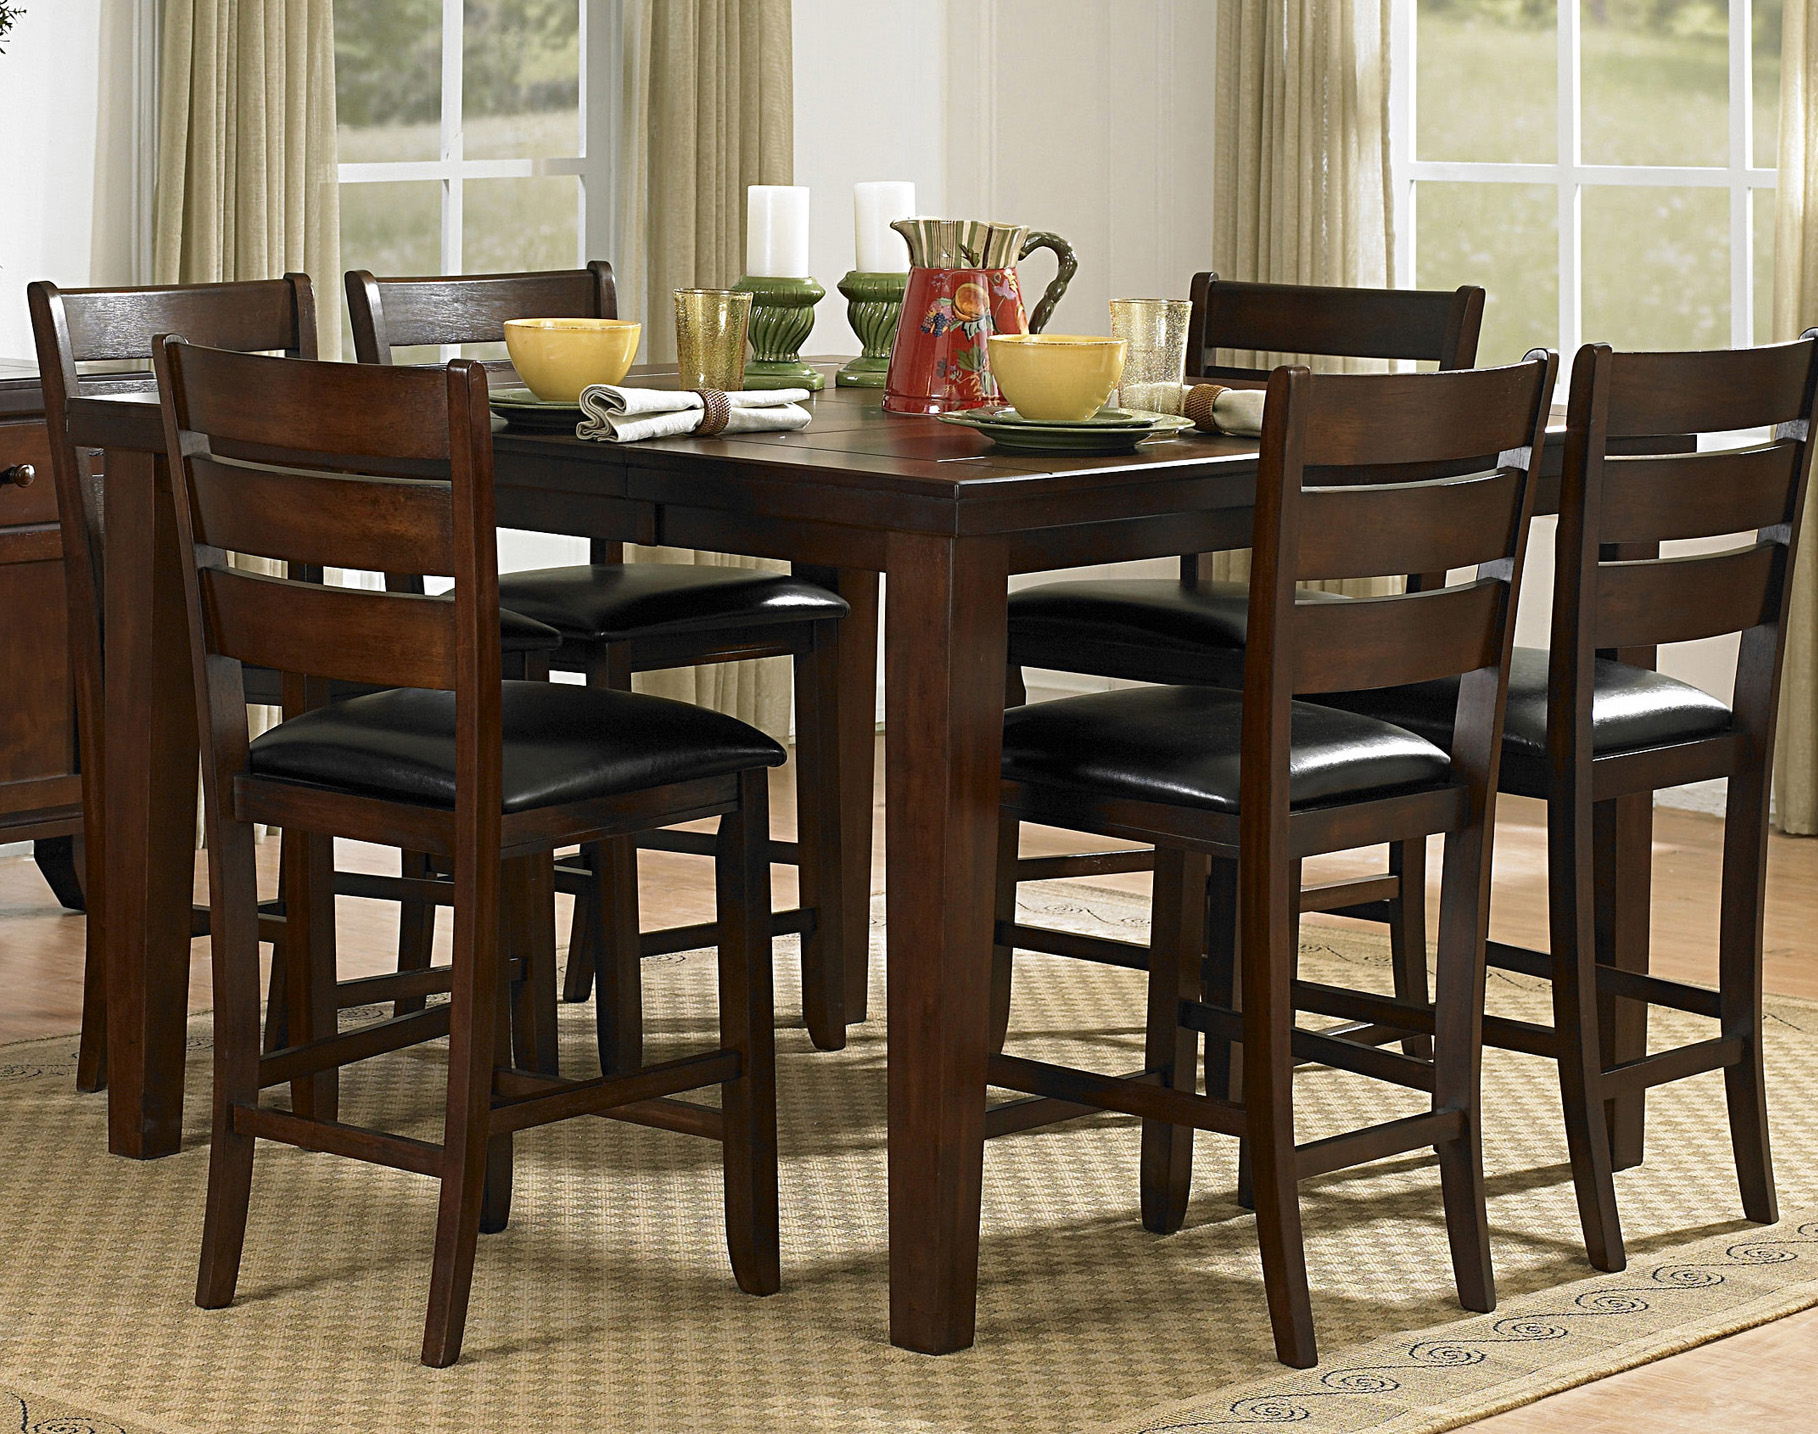 homelegance ameillia 5pc counter height dining room set dallas tx dining room sets furniture. Black Bedroom Furniture Sets. Home Design Ideas